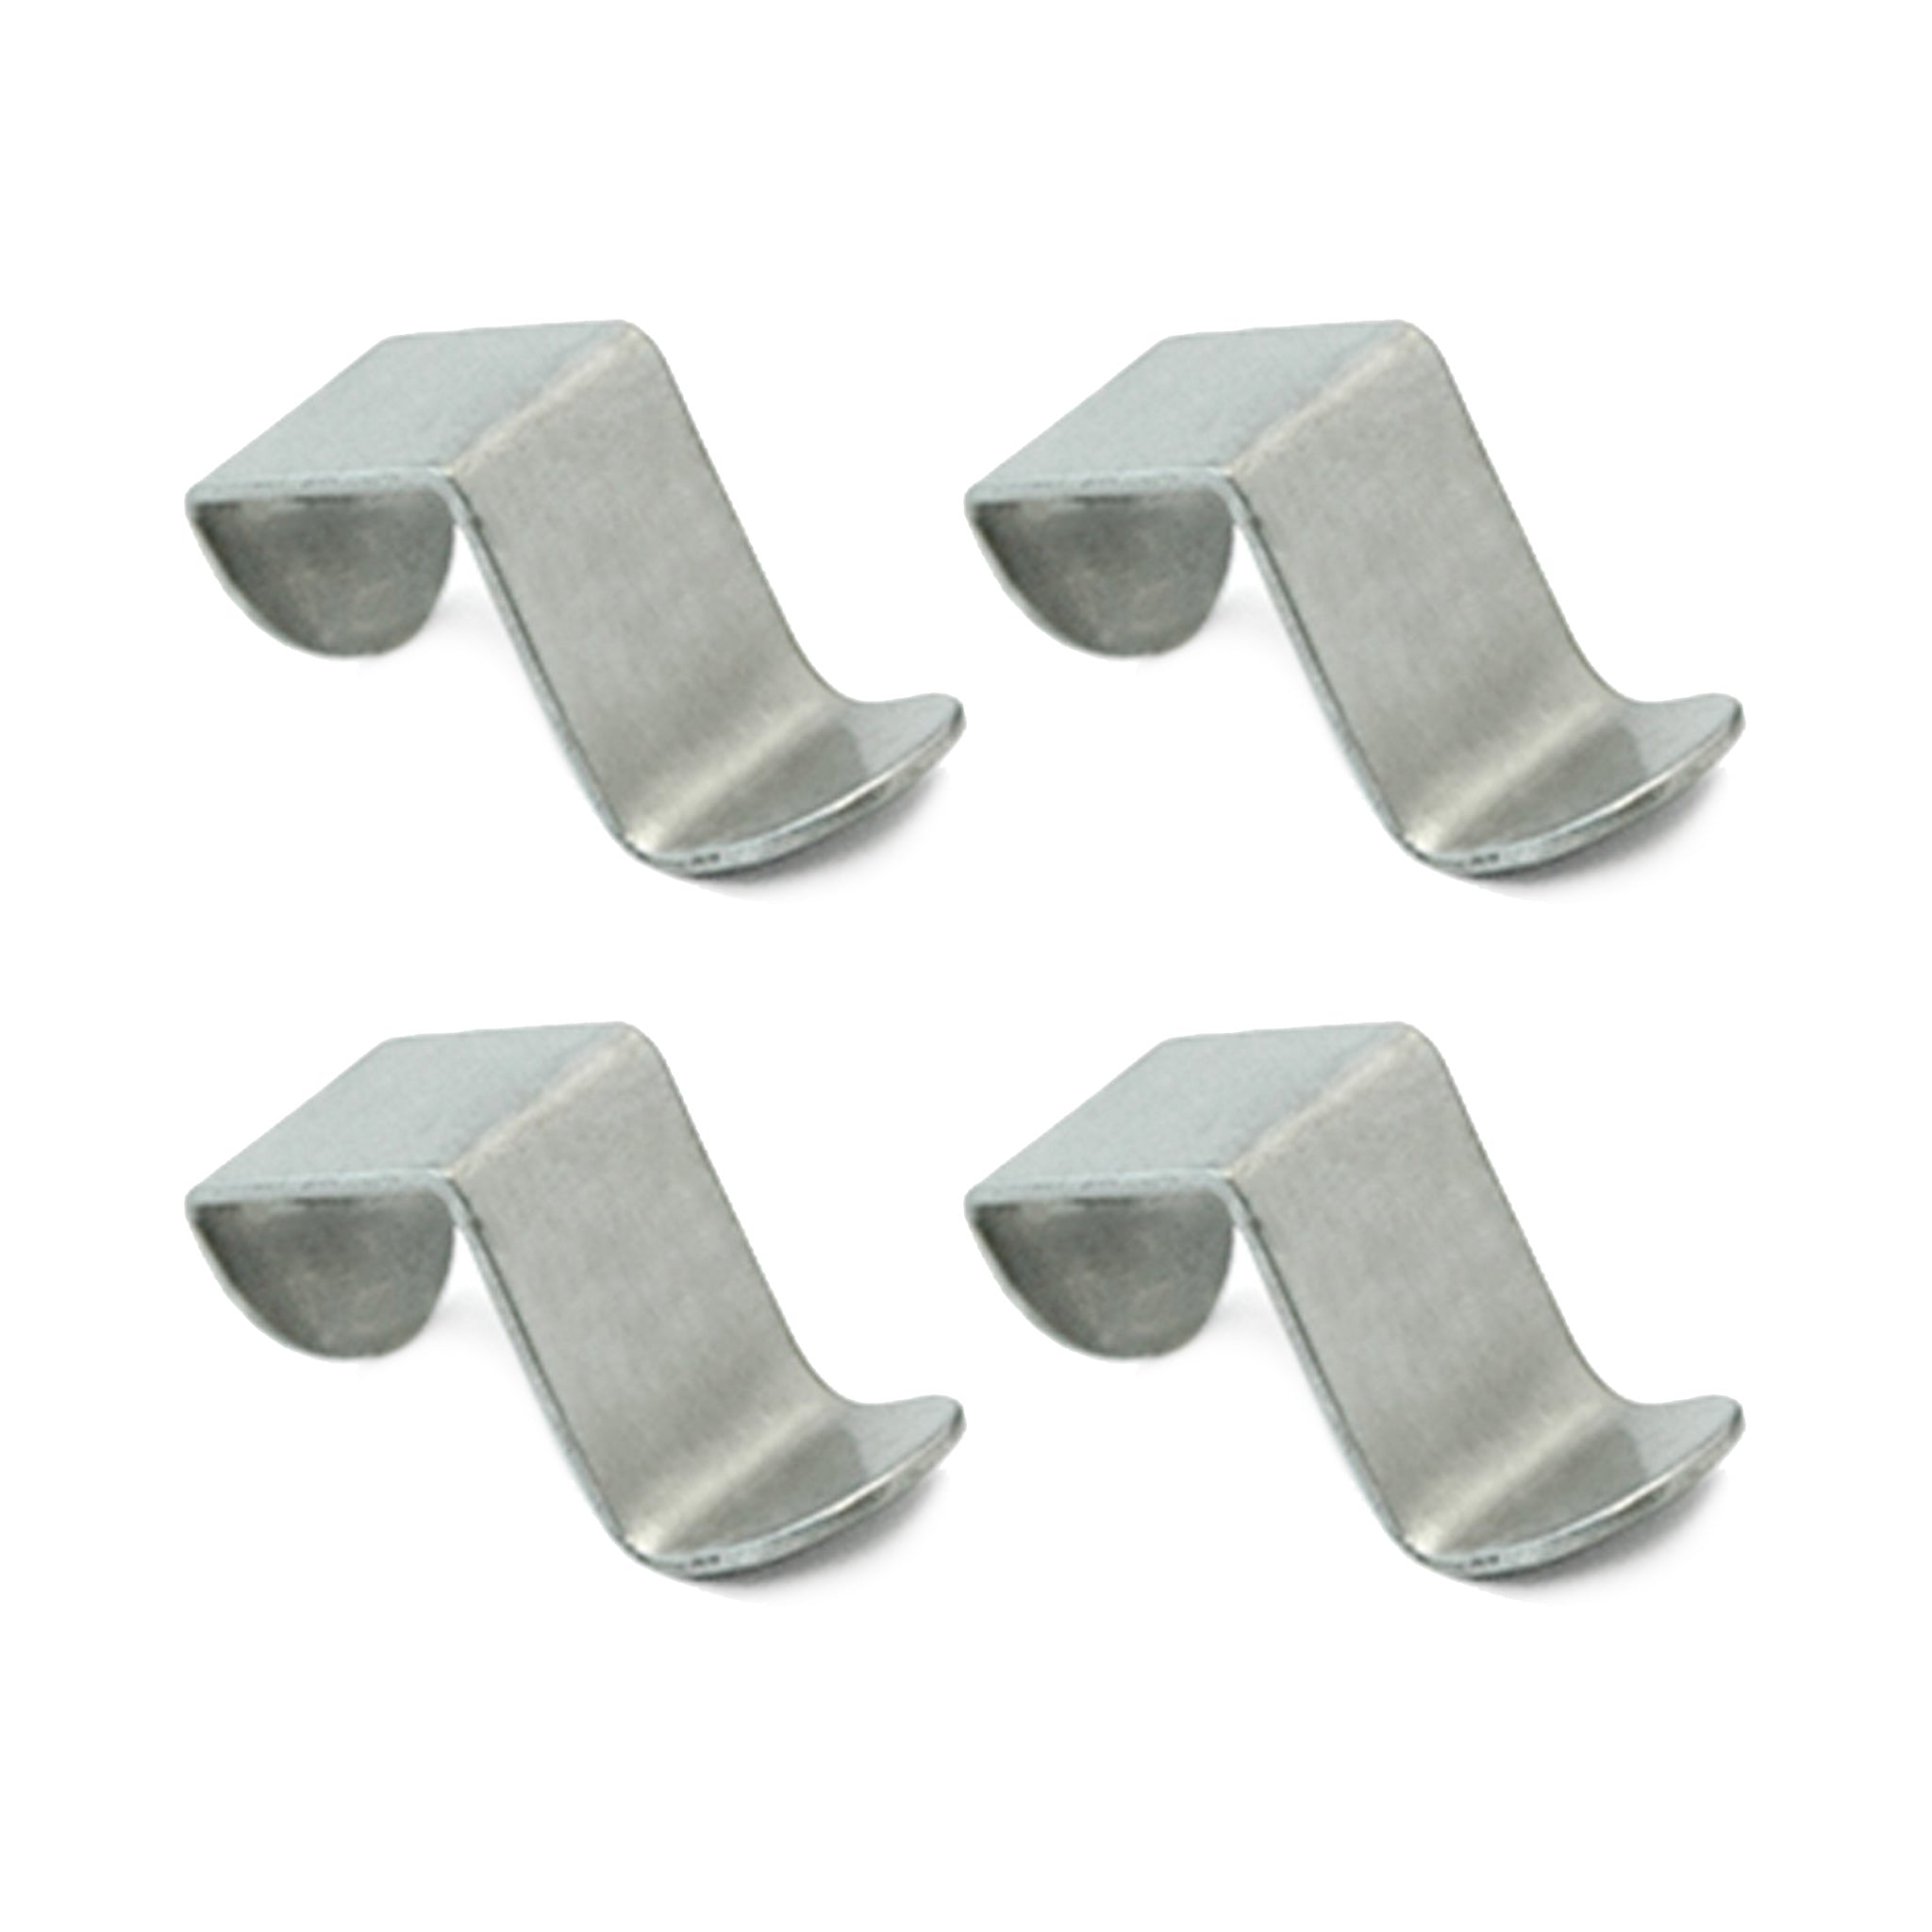 Tribest Freshlife® Stainless Steel Clips (Set of 4)